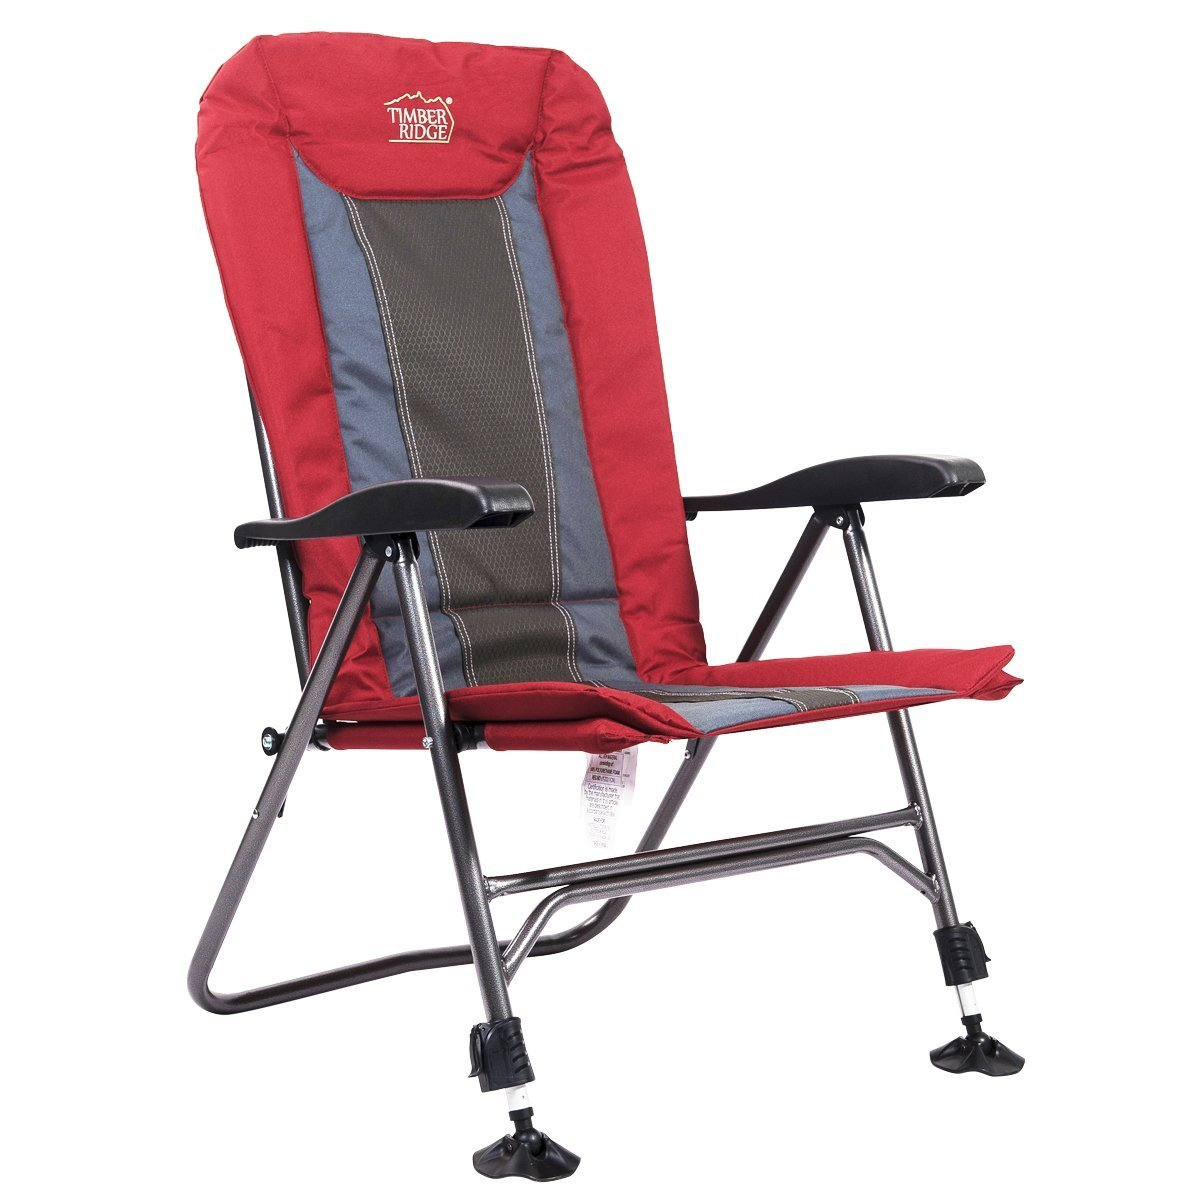 Timber Ridge TRFCH011LA Camping Chair Folding Heavy Duty